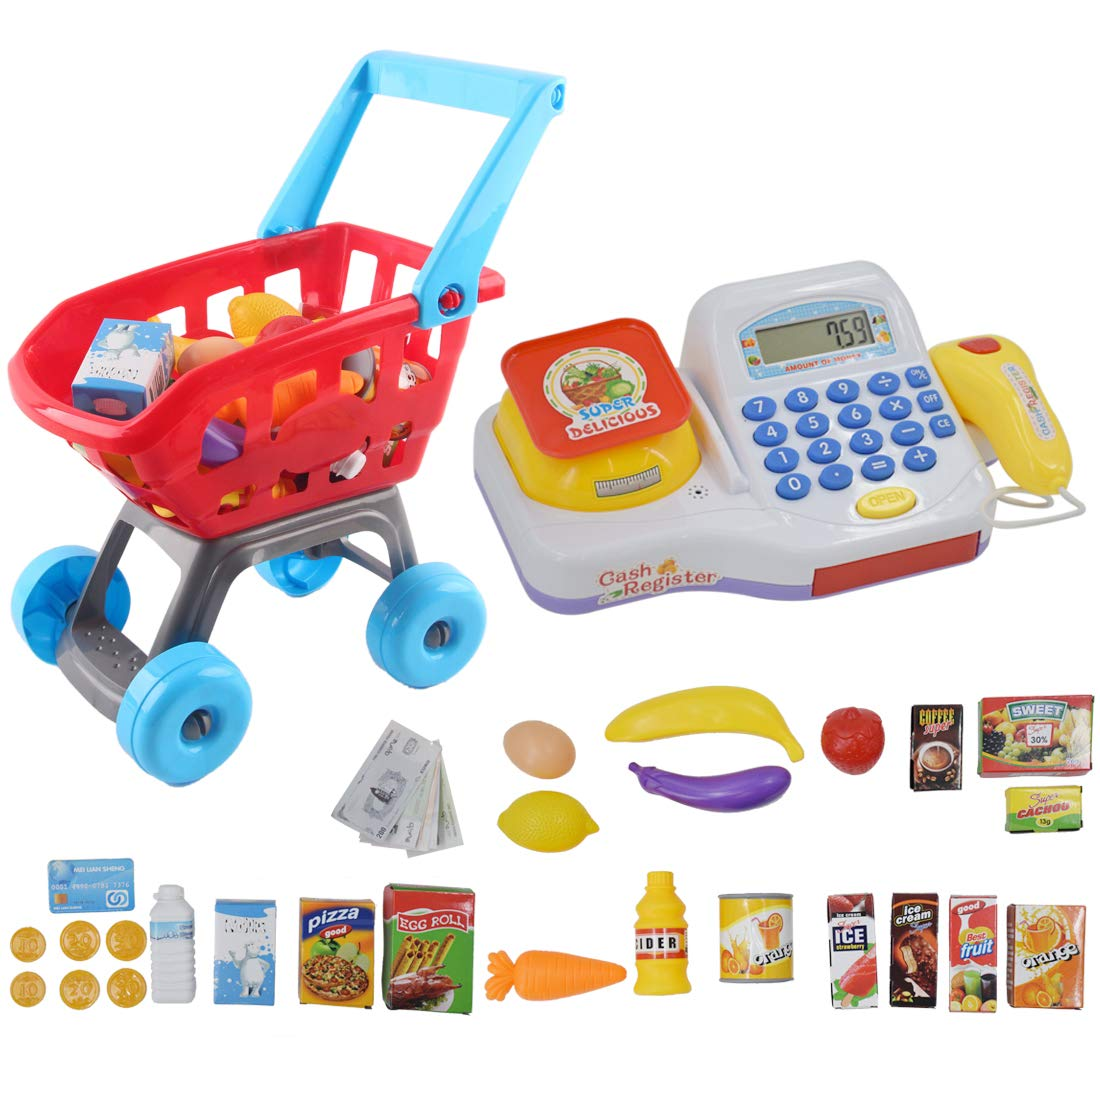 deAO Cash Register Electronic Calculator and Shopping Cart Playset Supermarket Accessories Play Food and Play Money Included